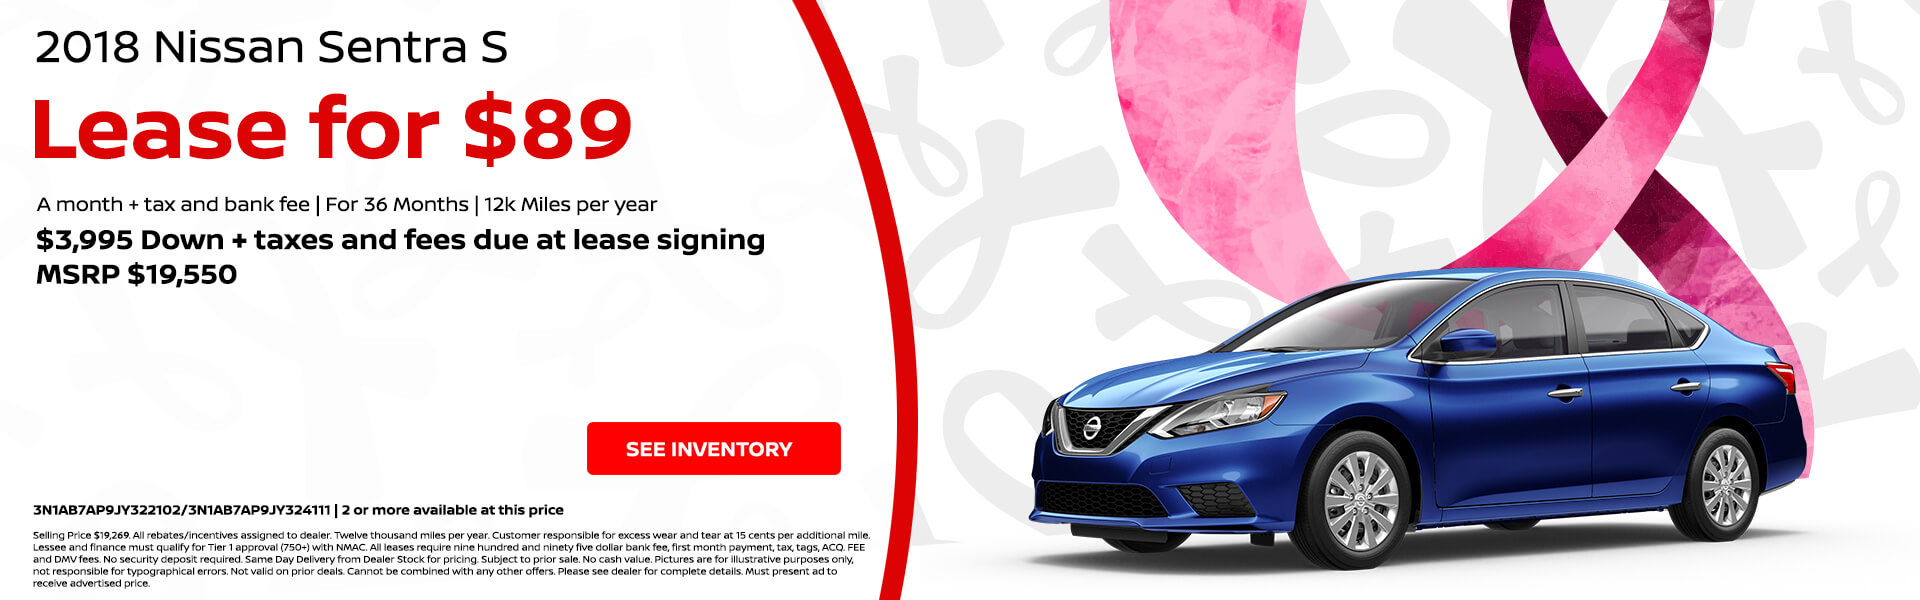 Great Nissan Sentra $89 Lease